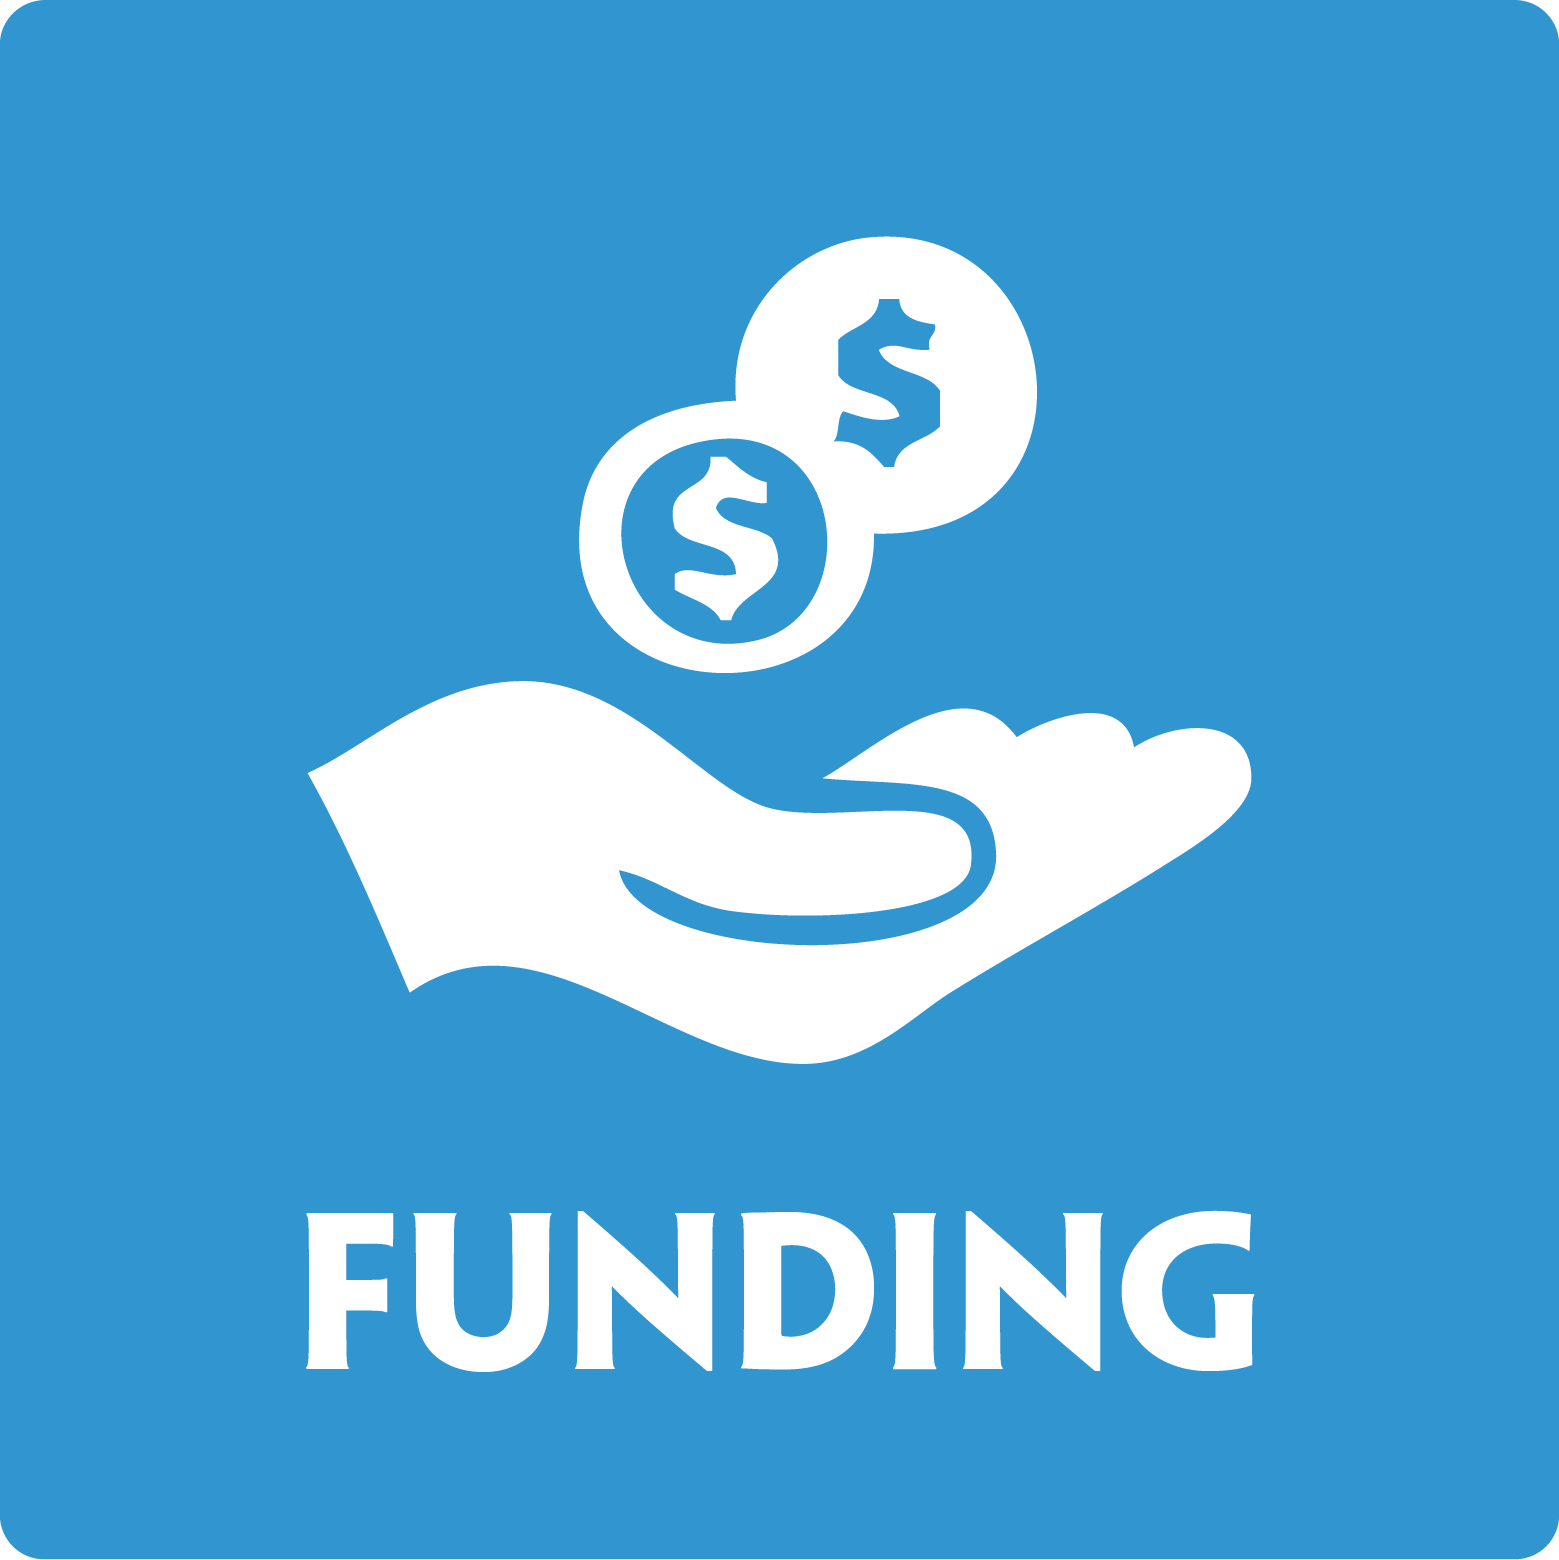 Funding Workshop Webpage